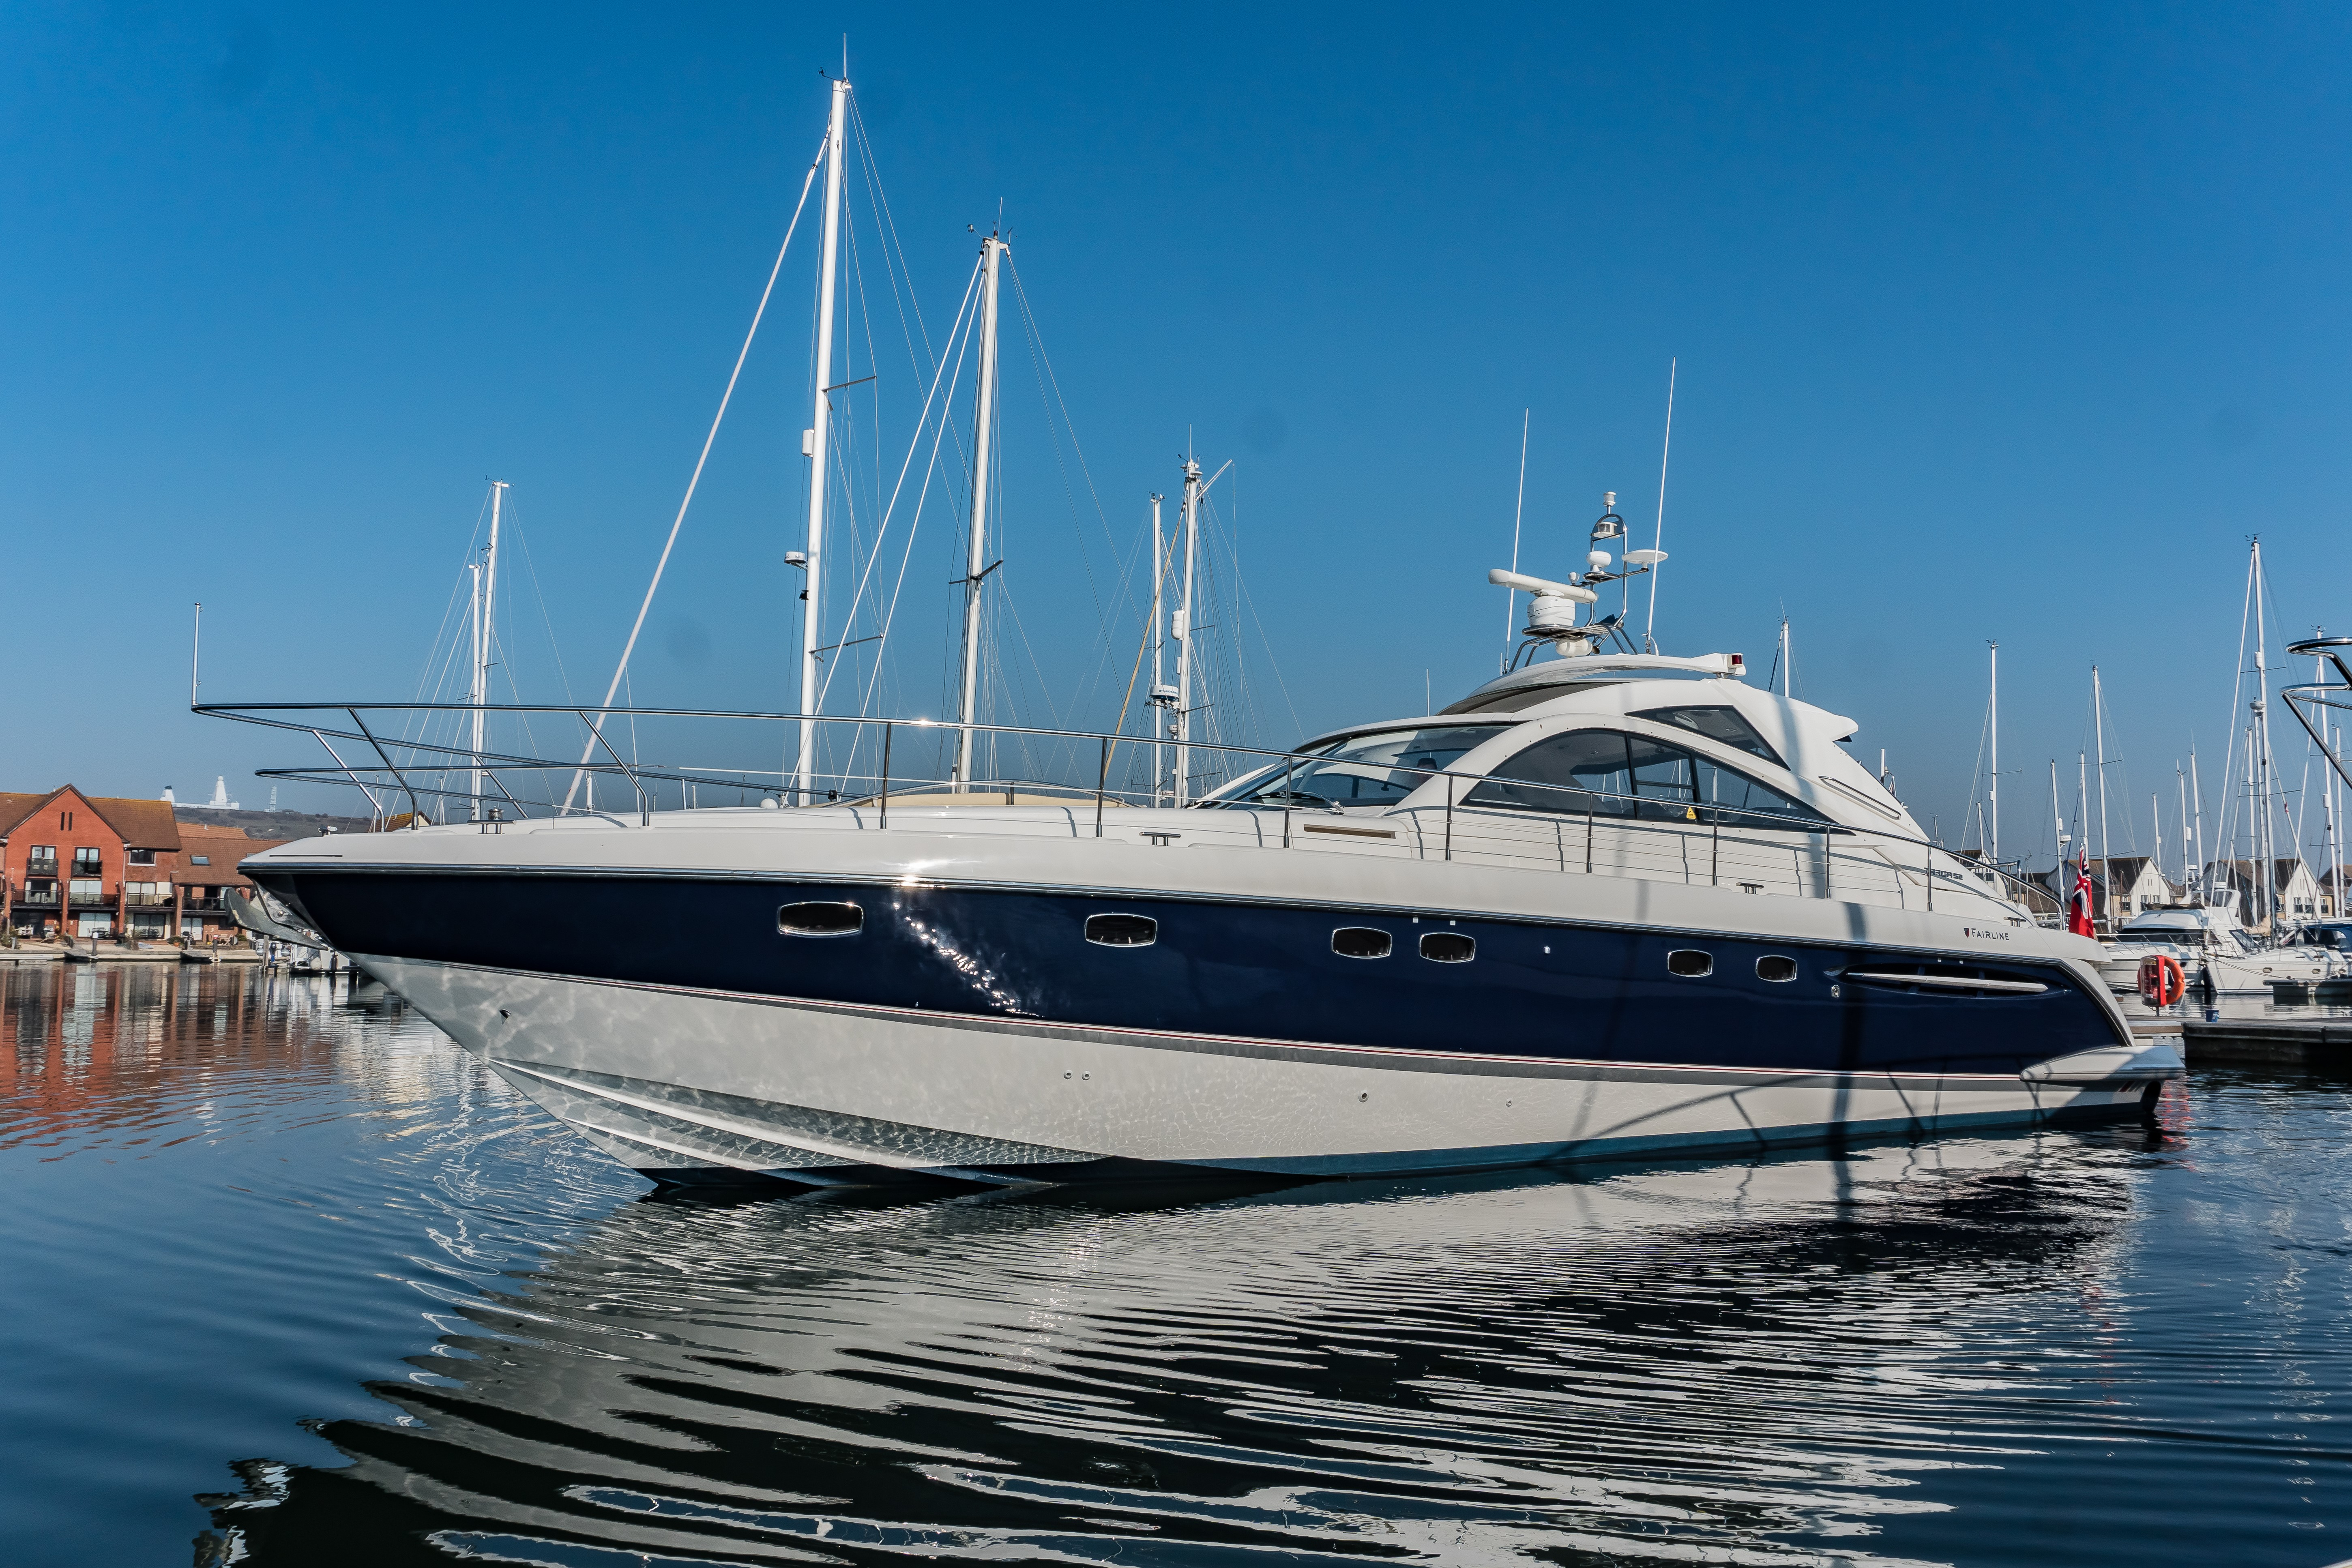 Fairline Targa 52 Fairline Targa 52 - For Sale